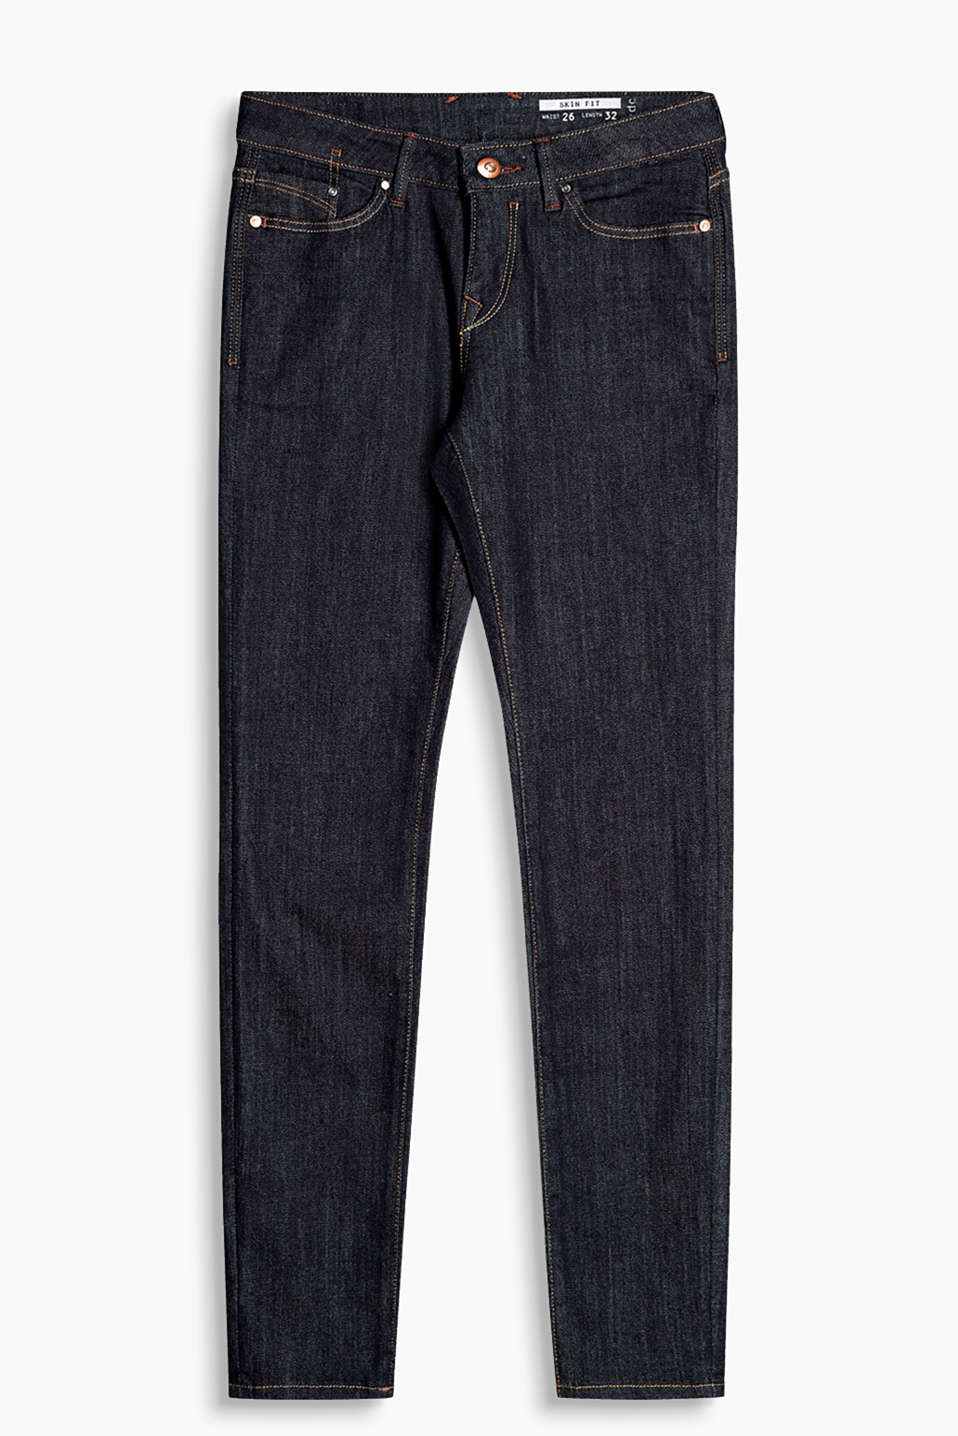 edc - Basic Jeans aus Stretch-Denim